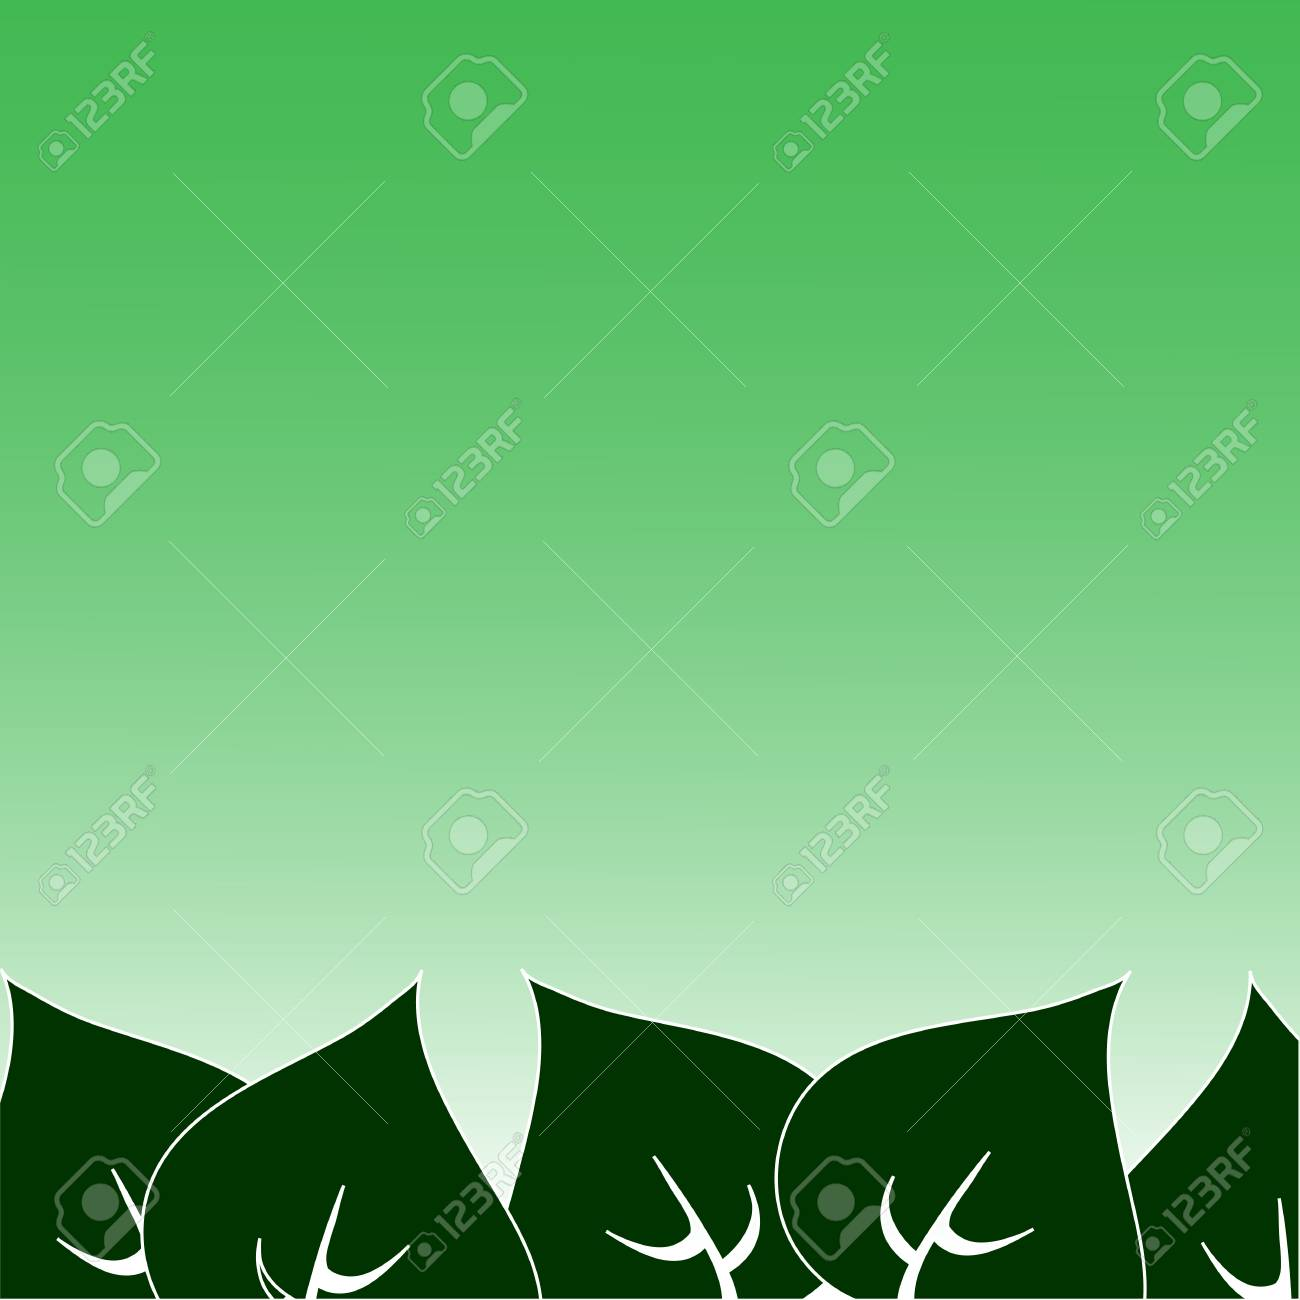 Frame Of Green Leaves Painted In Different Directions Royalty Free on